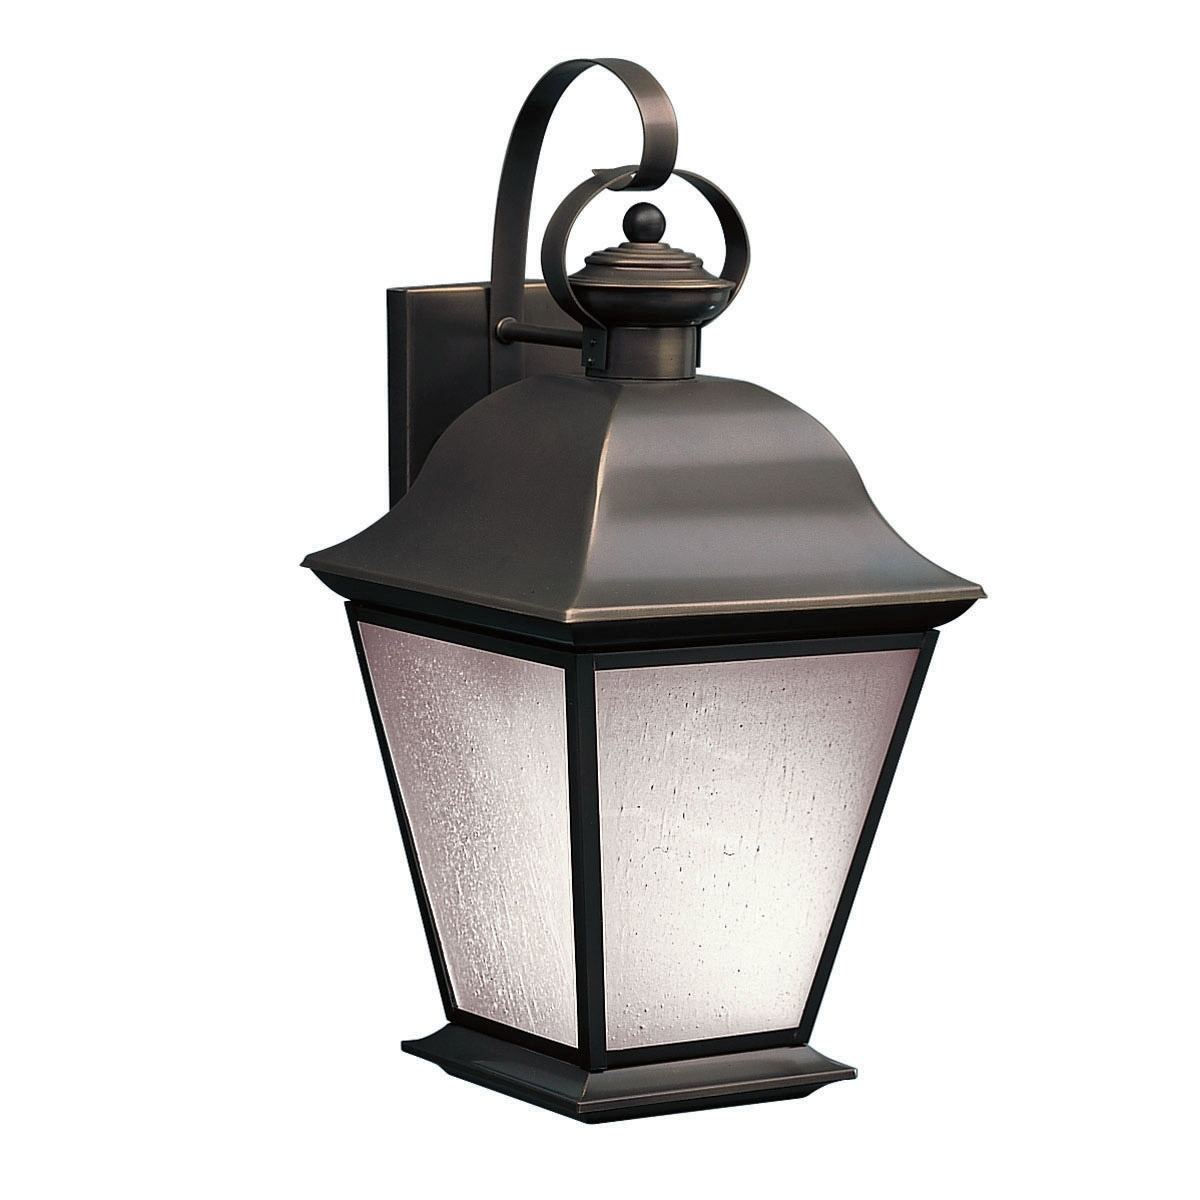 Popular Hampton Bay Solar Tiffany Lantern Outdoor Garden / Landscape Light Inside Hampton Bay Outdoor Wall Lighting (View 14 of 20)